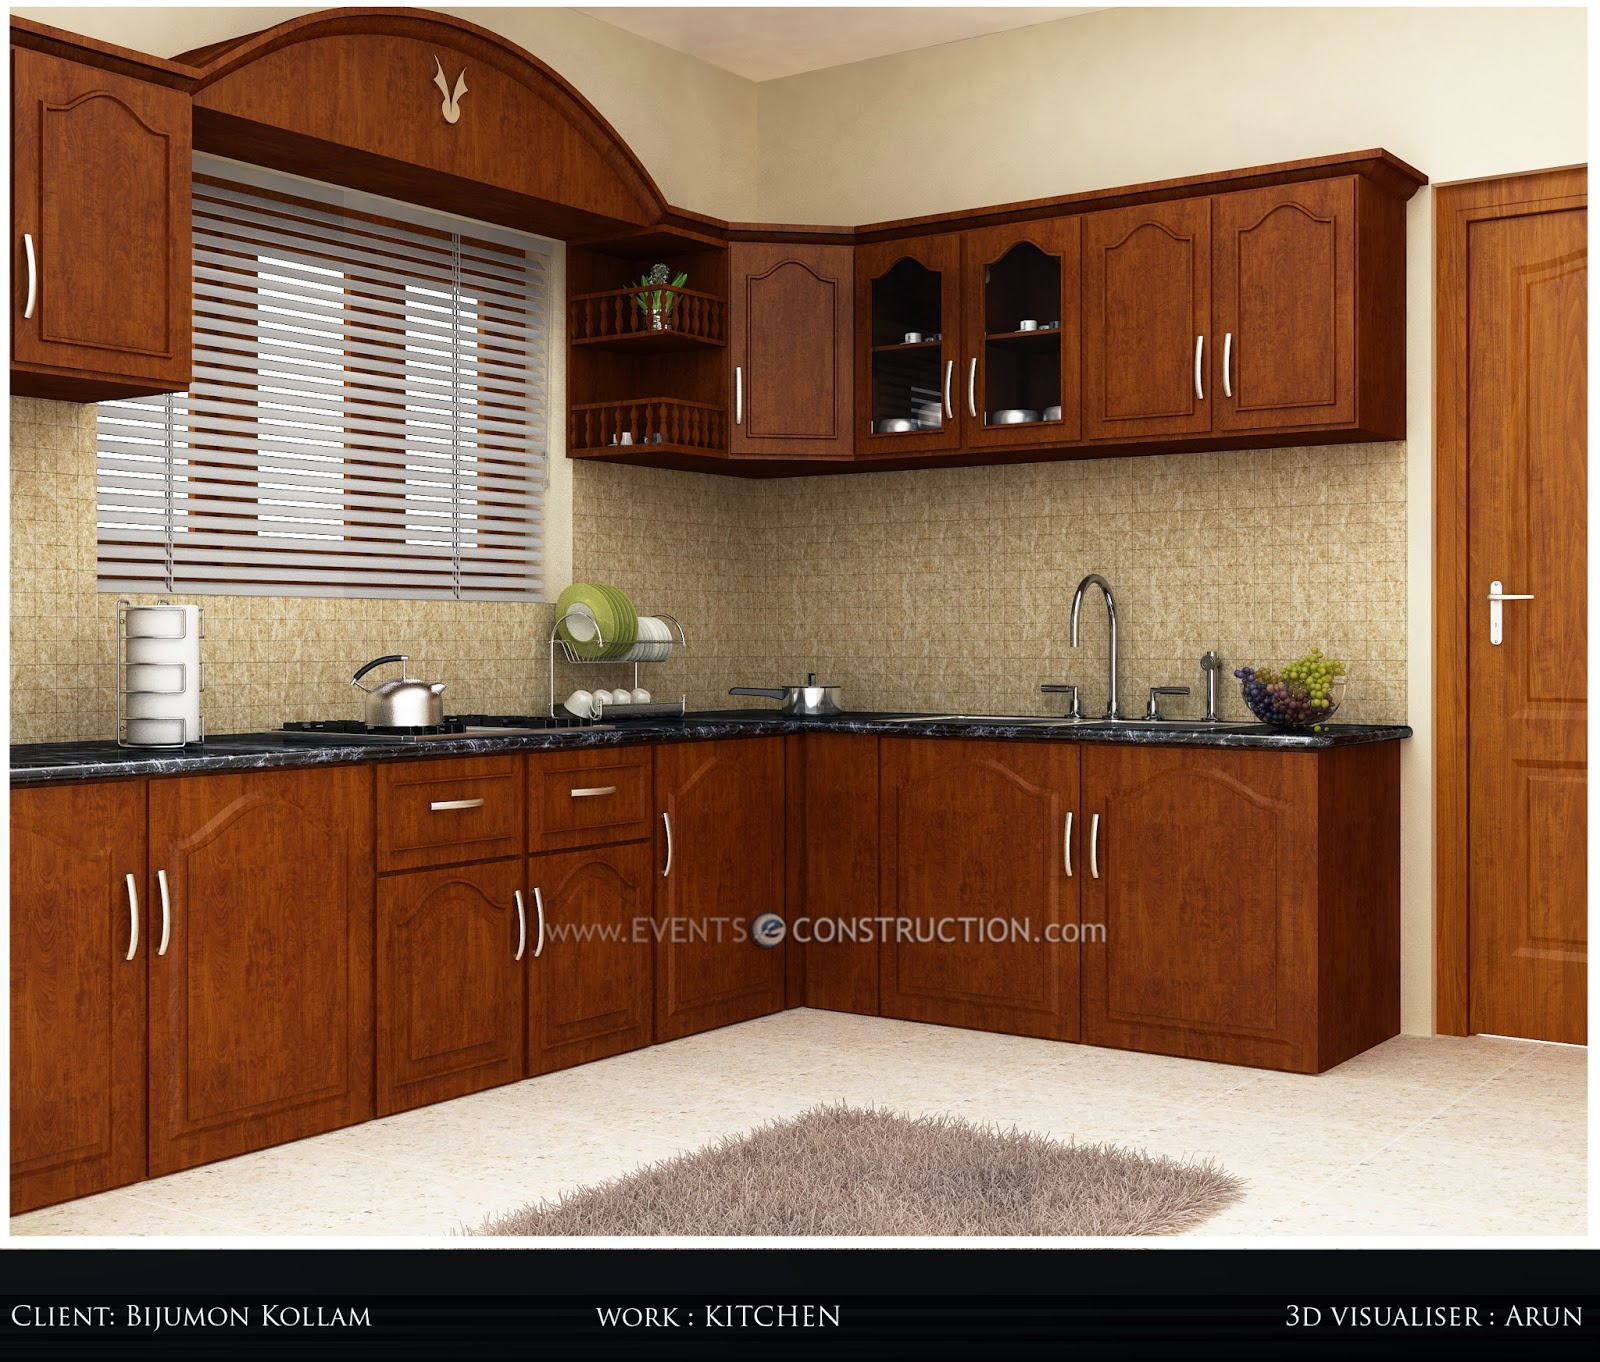 Evens construction pvt ltd simple kerala kitchen interior for Model kitchen images